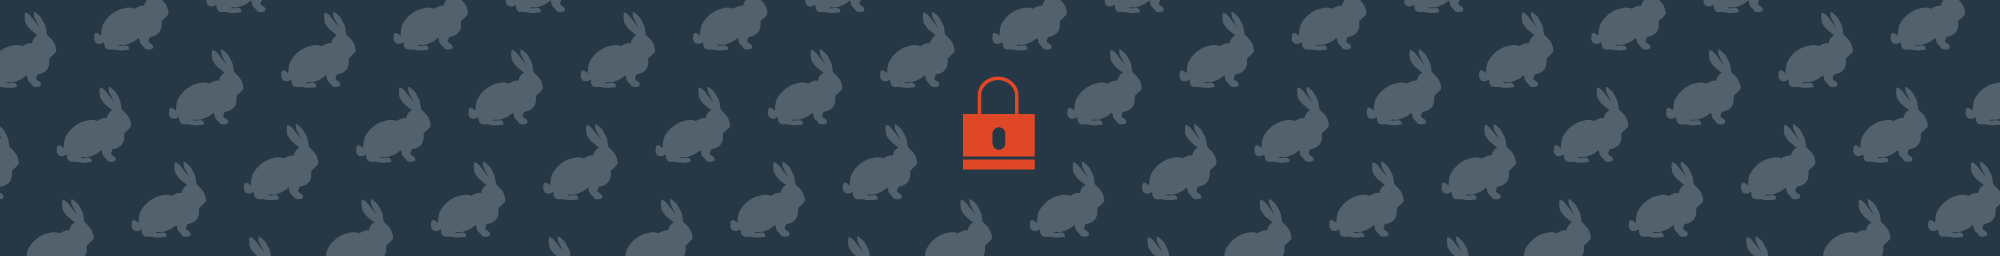 Detecting Bad Rabbit Ransomware